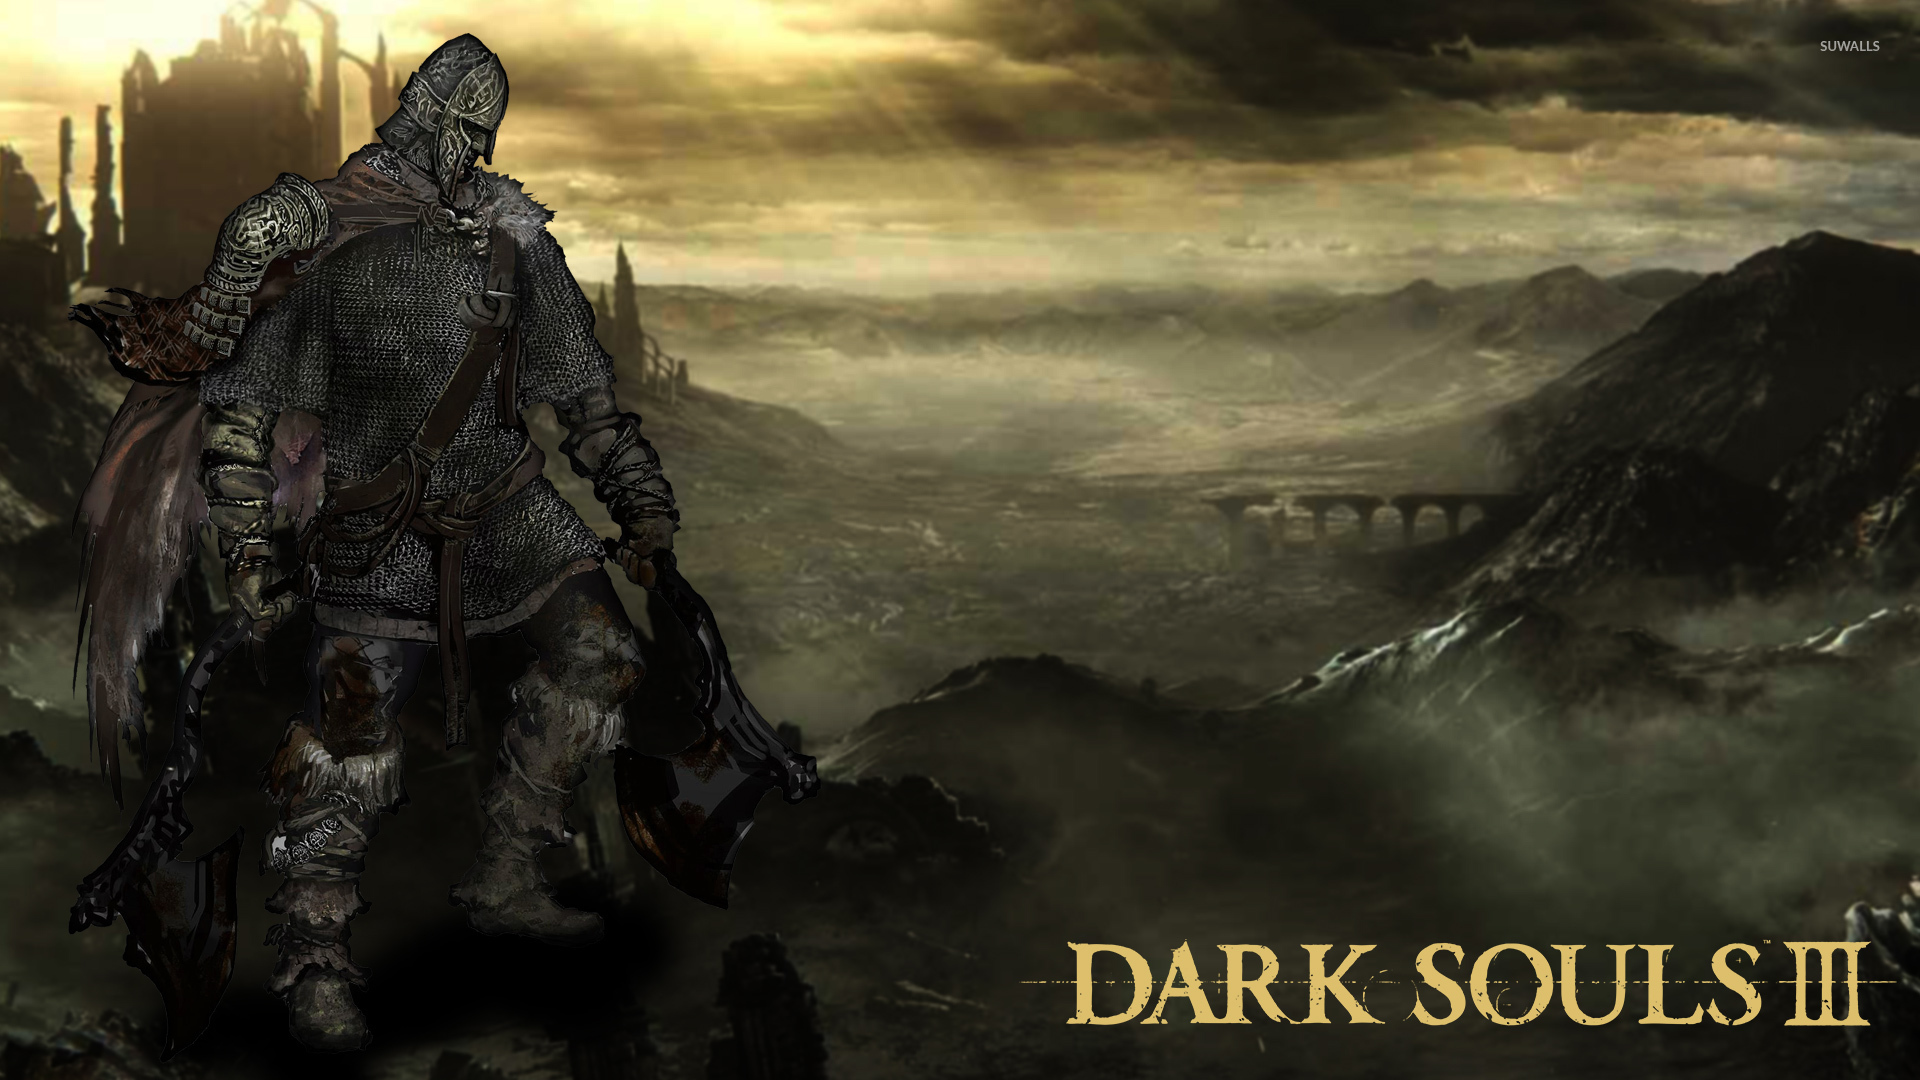 Violent video games Northern Warrior in in Dark Souls III